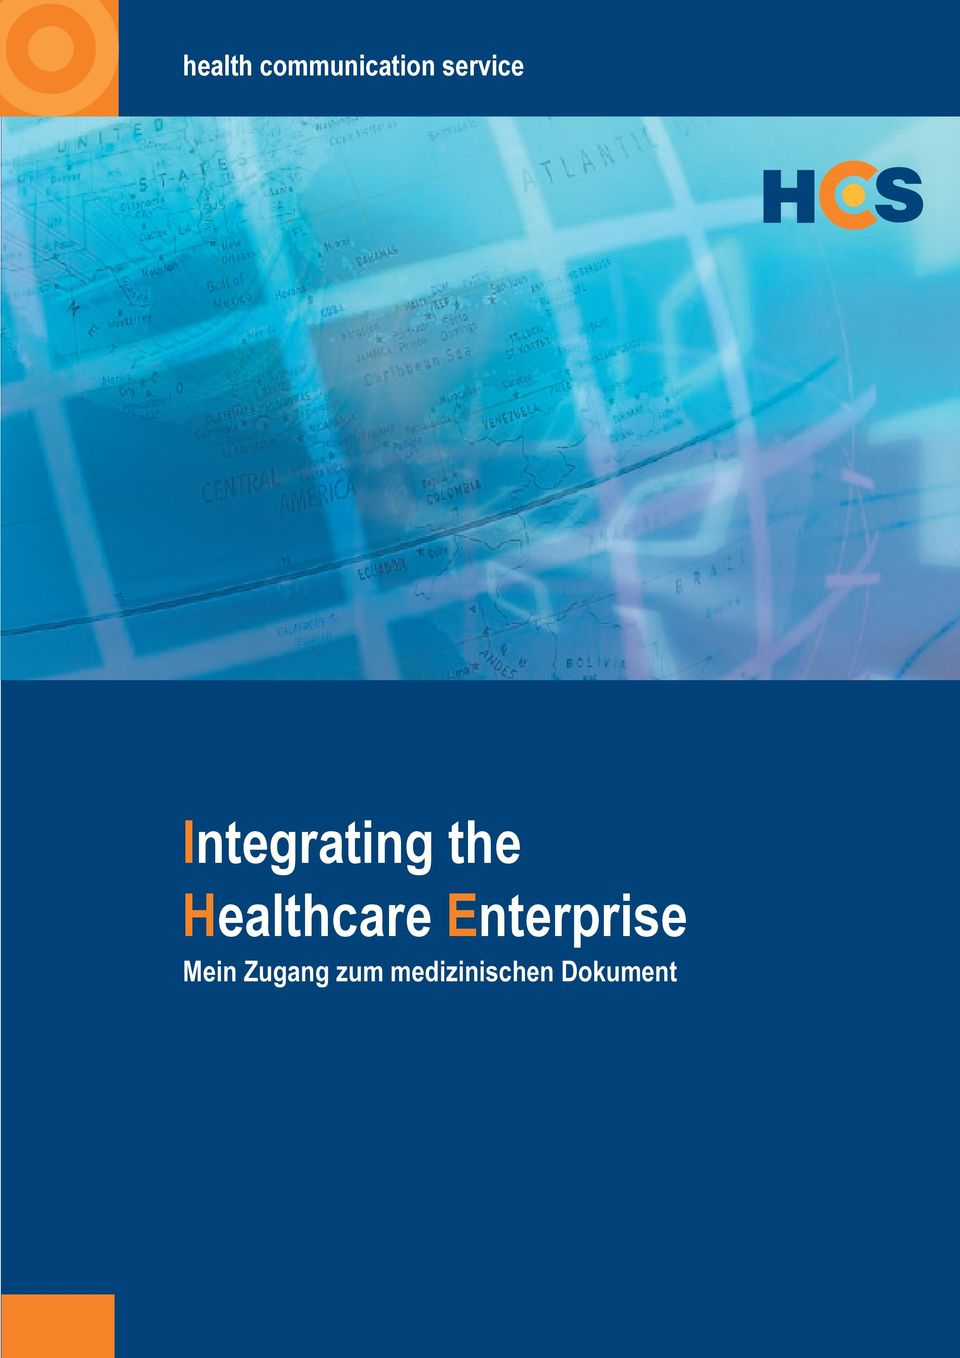 Healthcare Enterprise Mein